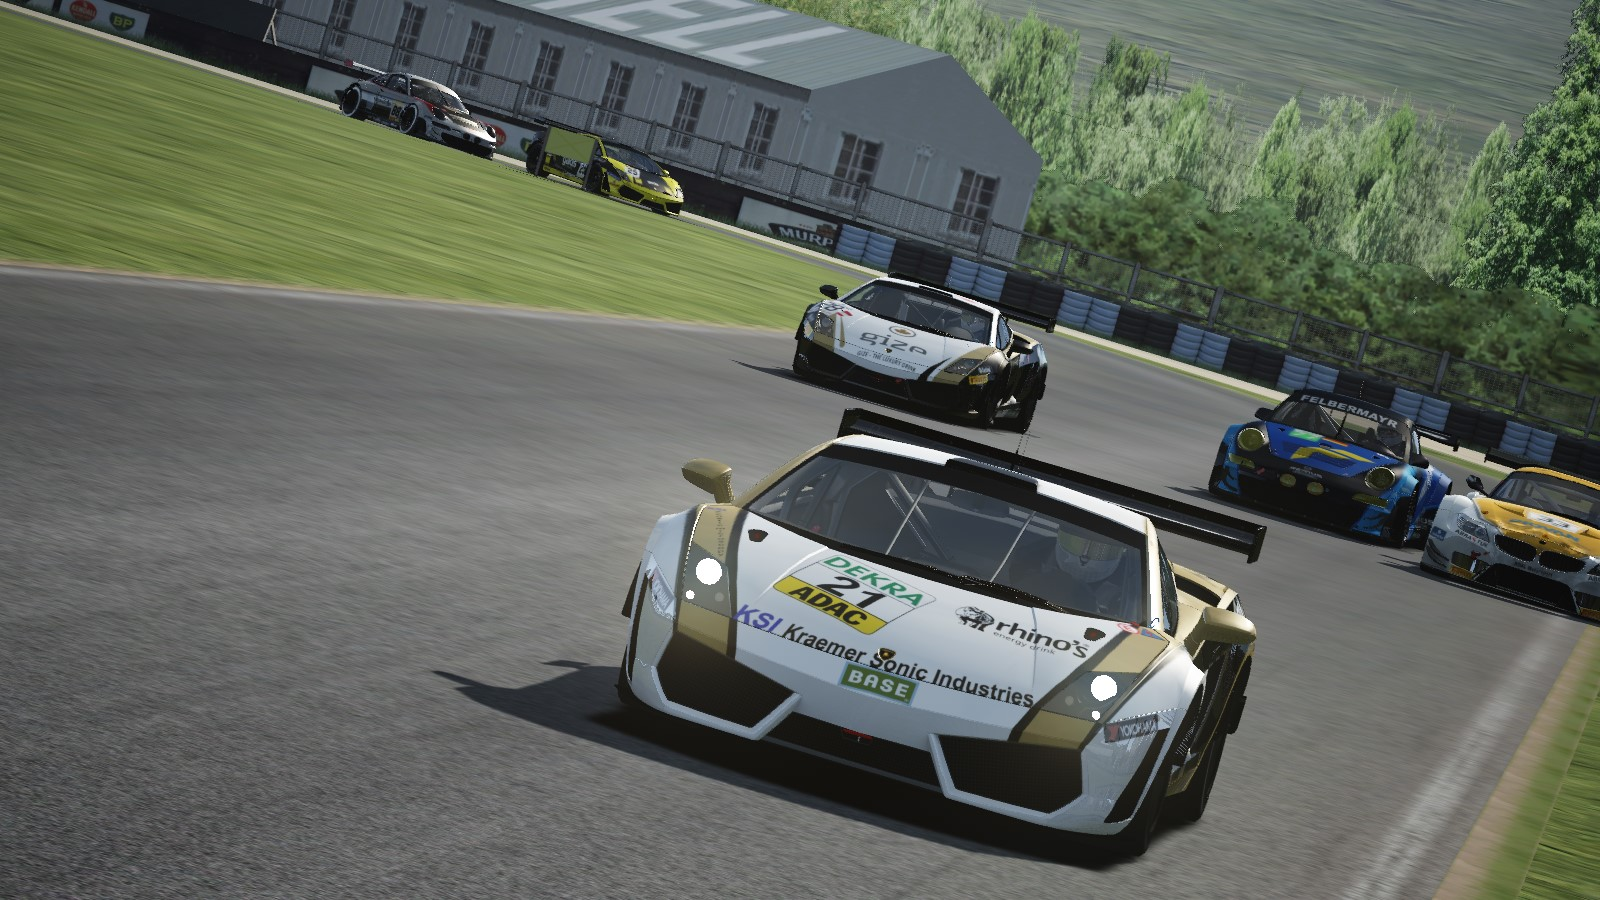 Screenshot_lamborghini_gallardo_gt3_goodwood_12-9-115-4-35-0.jpg